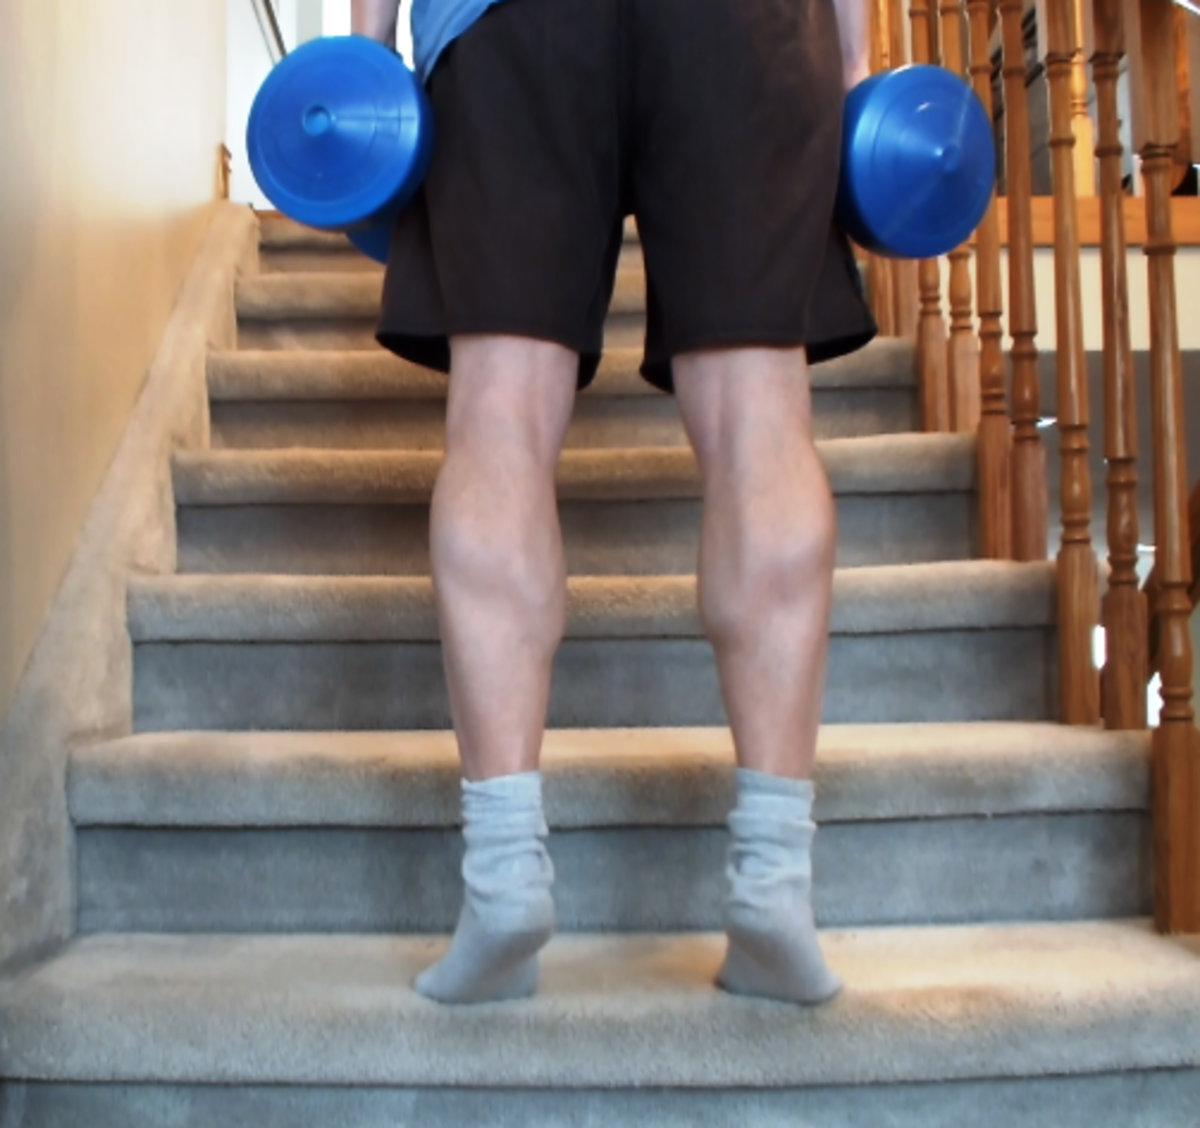 30 Day Challenge: 100 Calf Raises a Day for Bigger Calves.